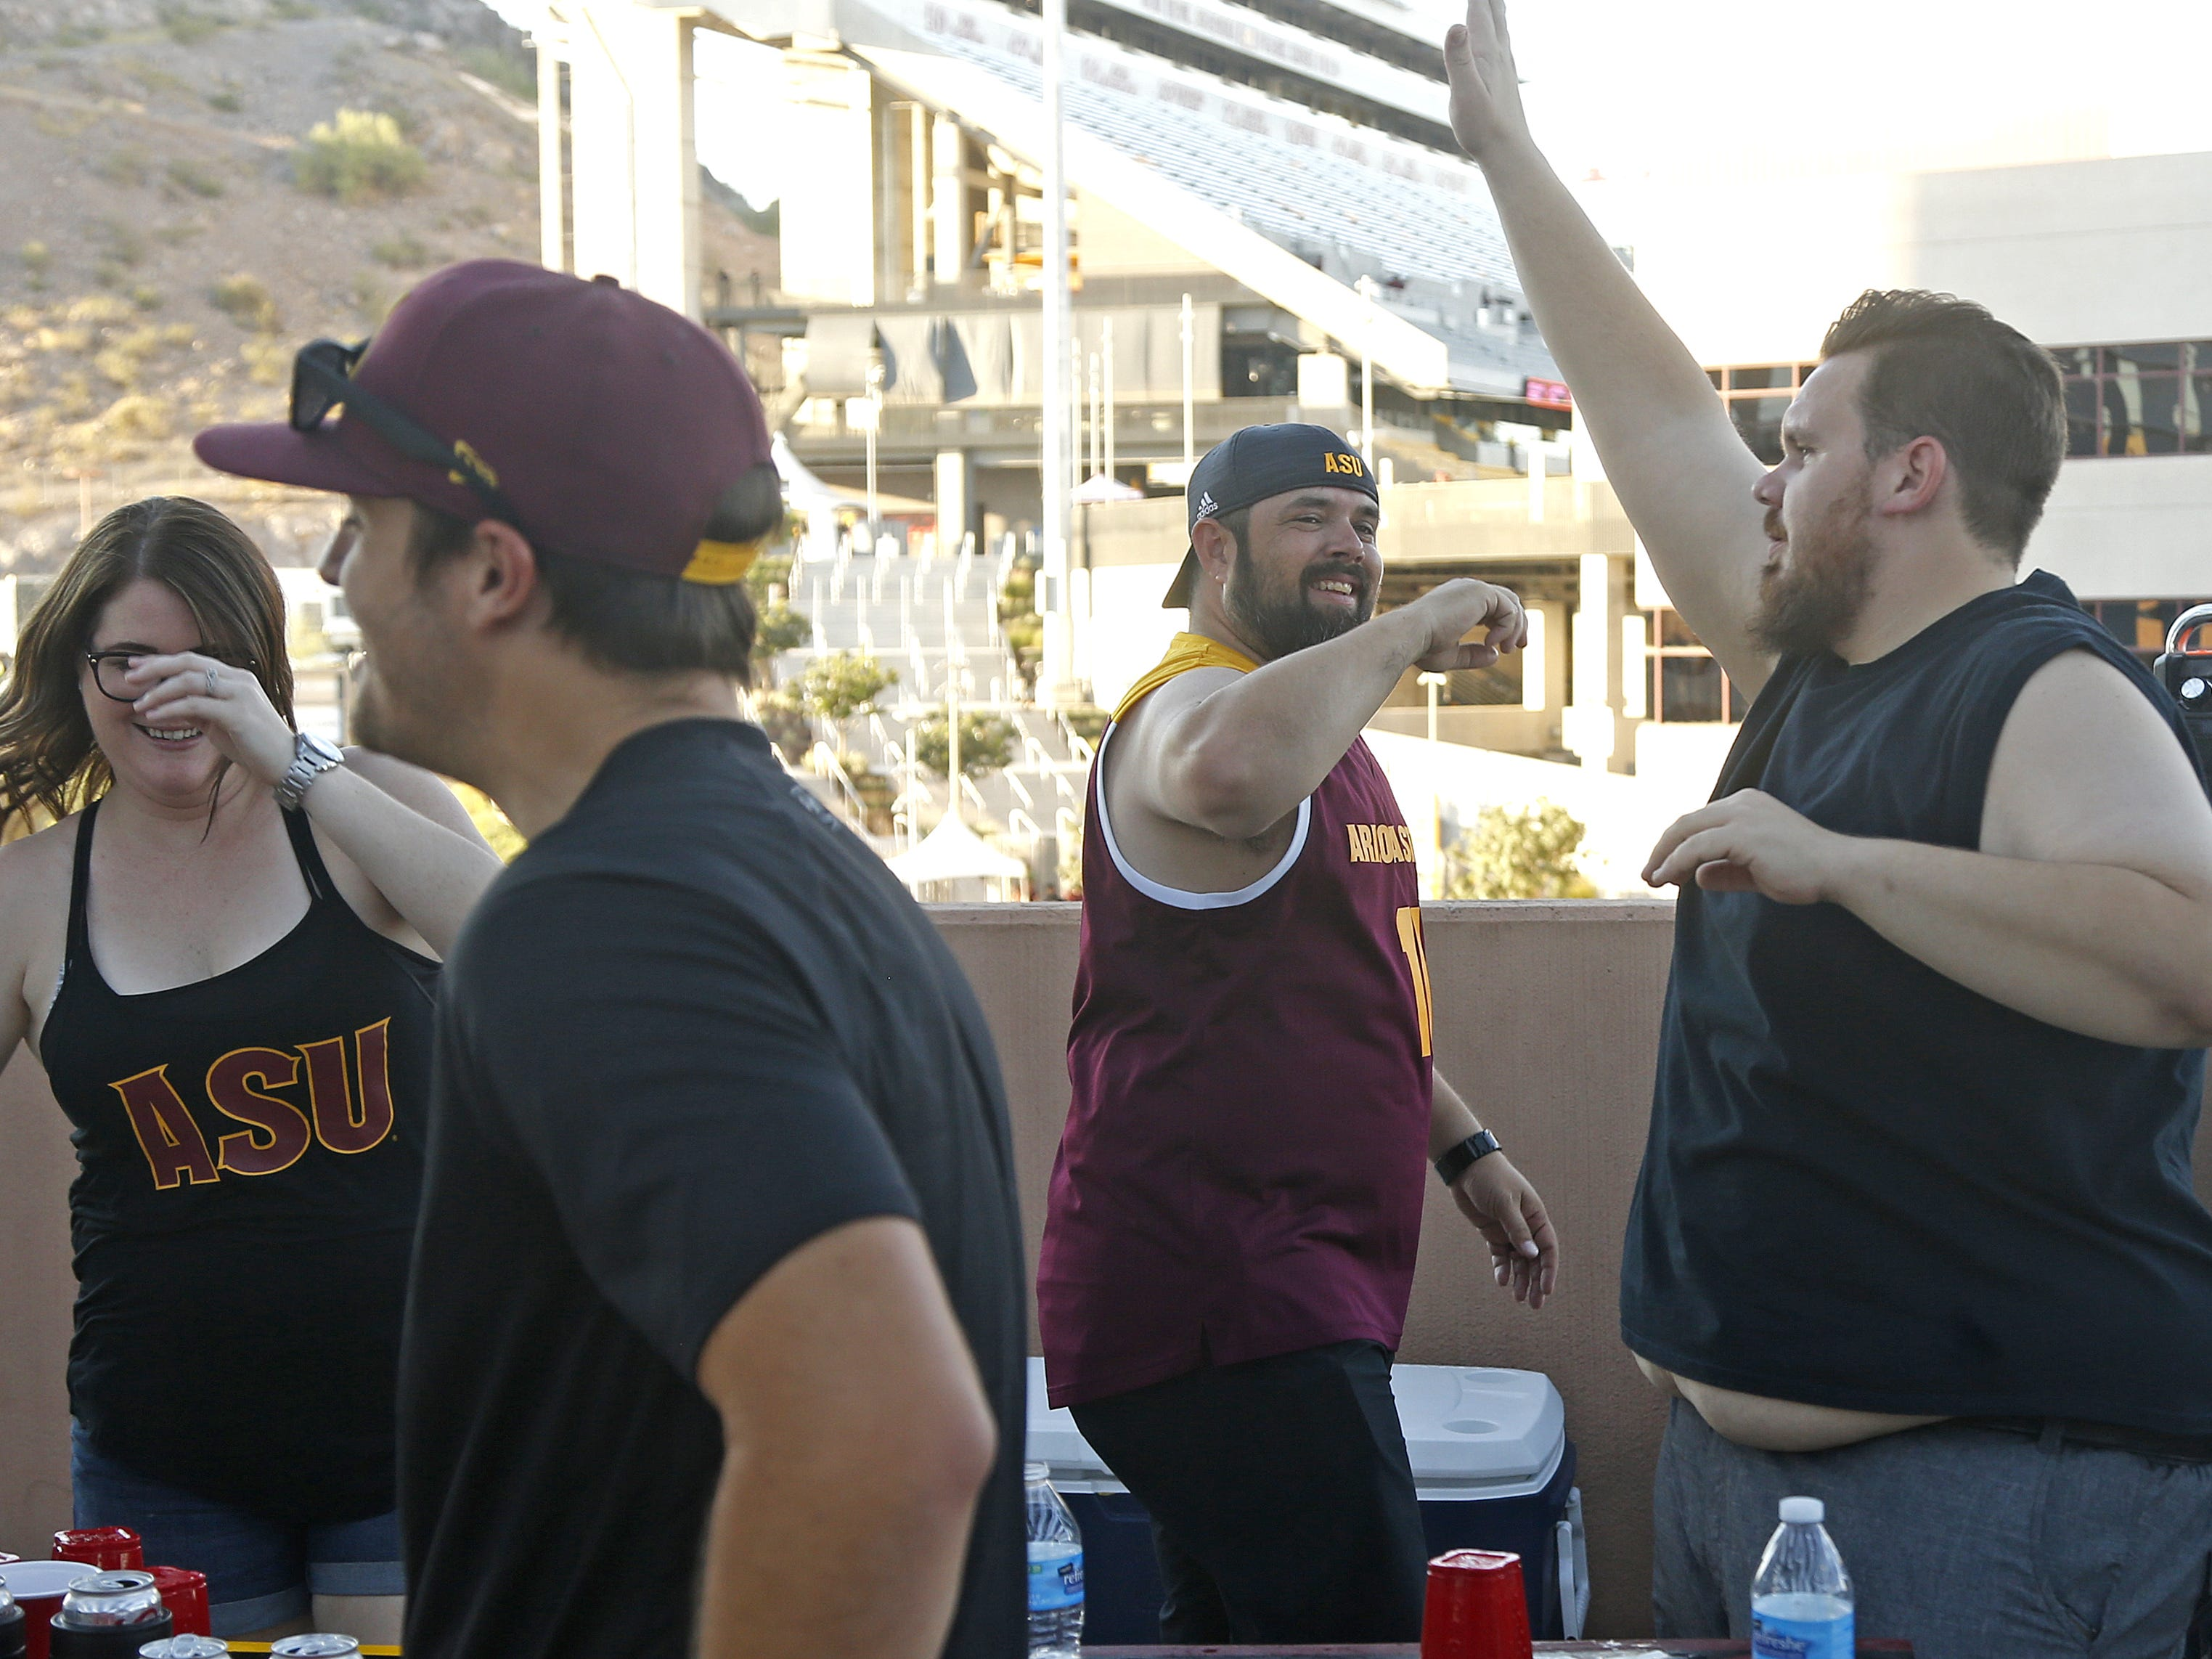 Adam Ali (center) celebrates winning a game of what they call flip pong before an ASU game against Michigan State at Sun Devil Stadium in Tempe, Ariz. on Sept. 8, 2018.